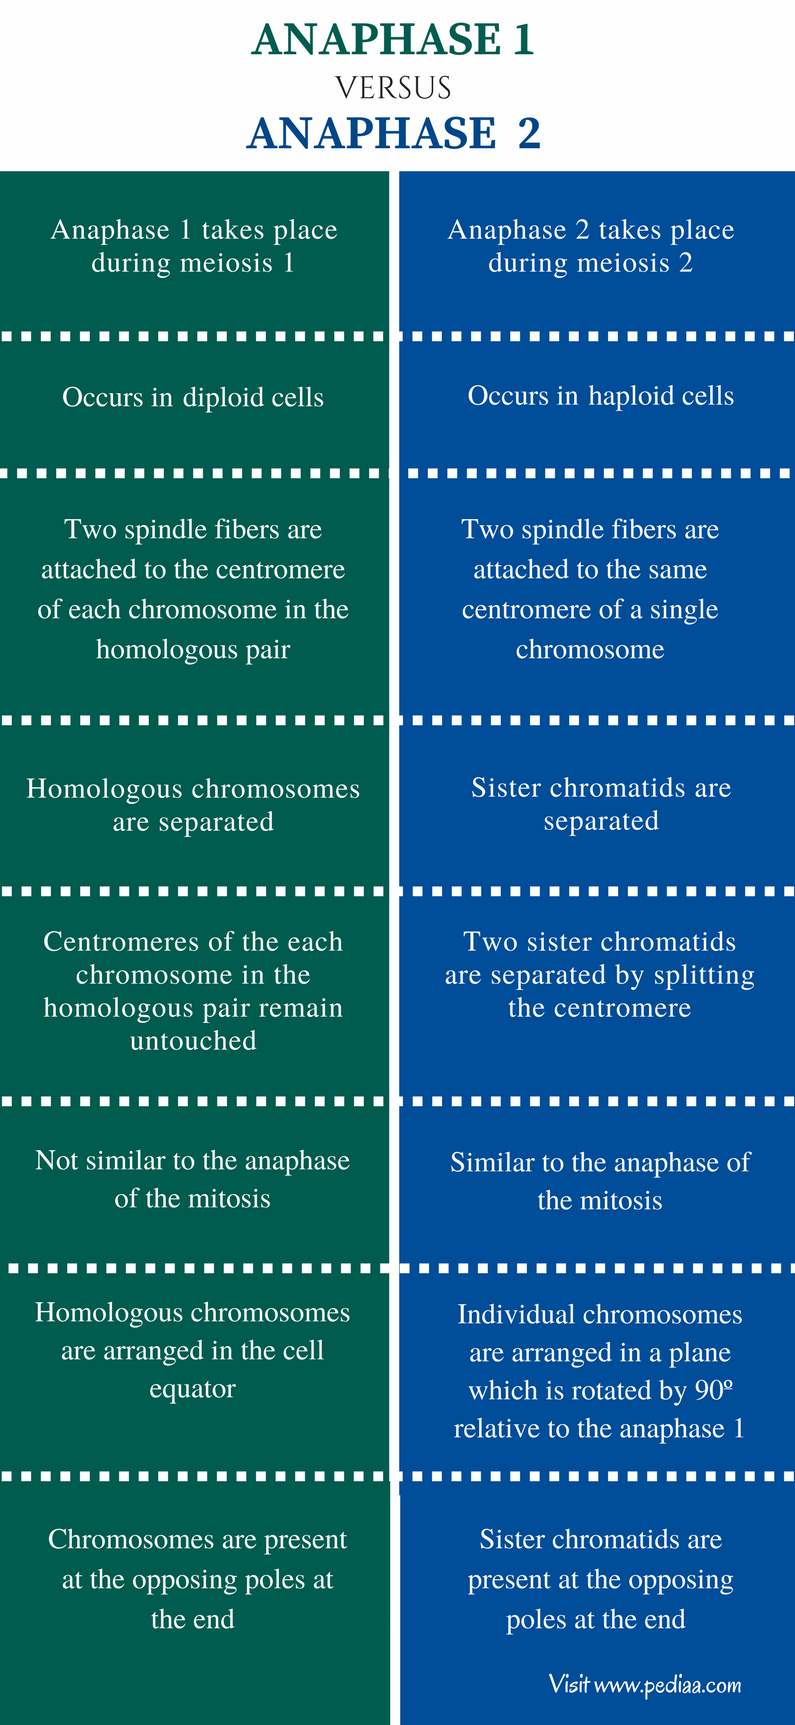 Difference Between Anaphase 1 and 2 - Comparison Summary (1)